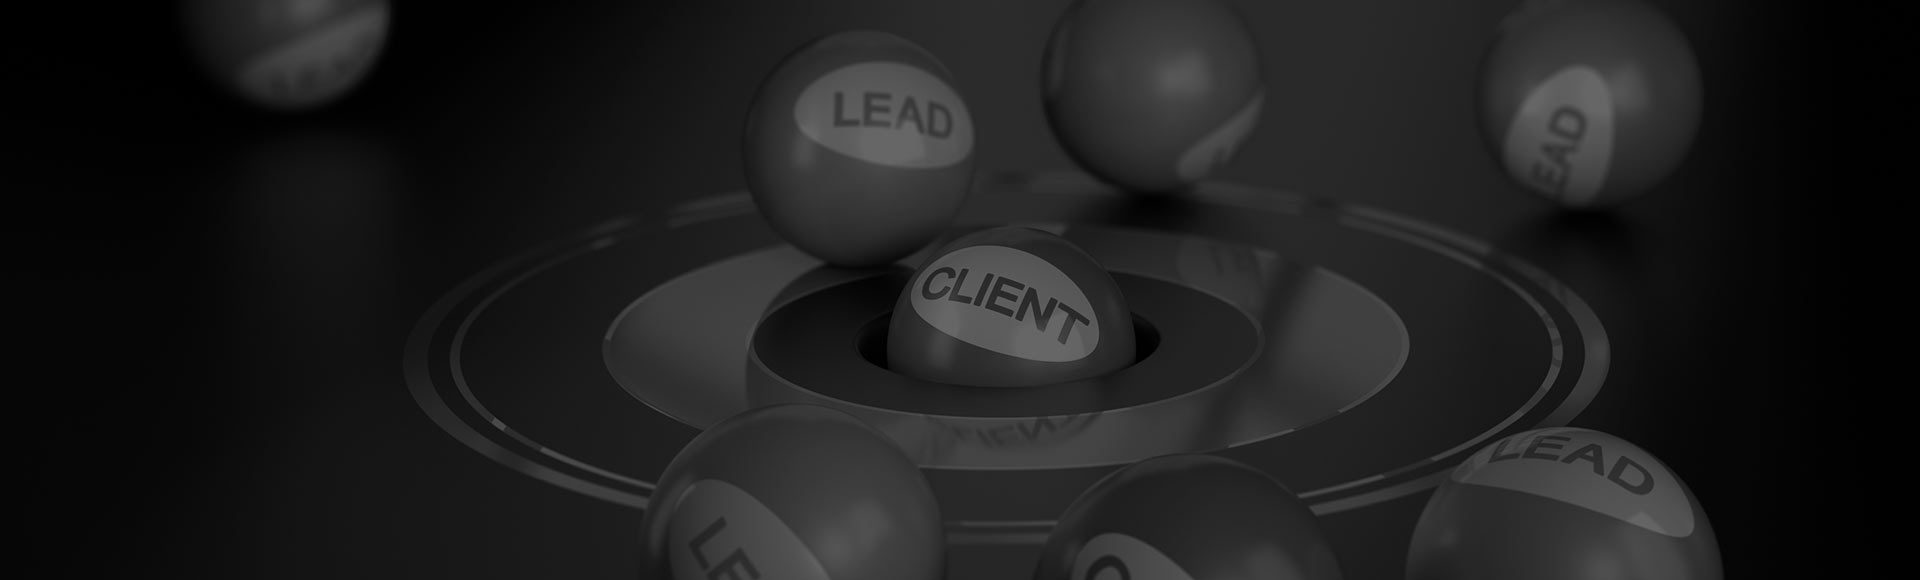 Lead-Generation-and-Sales-Driven-Campaigns